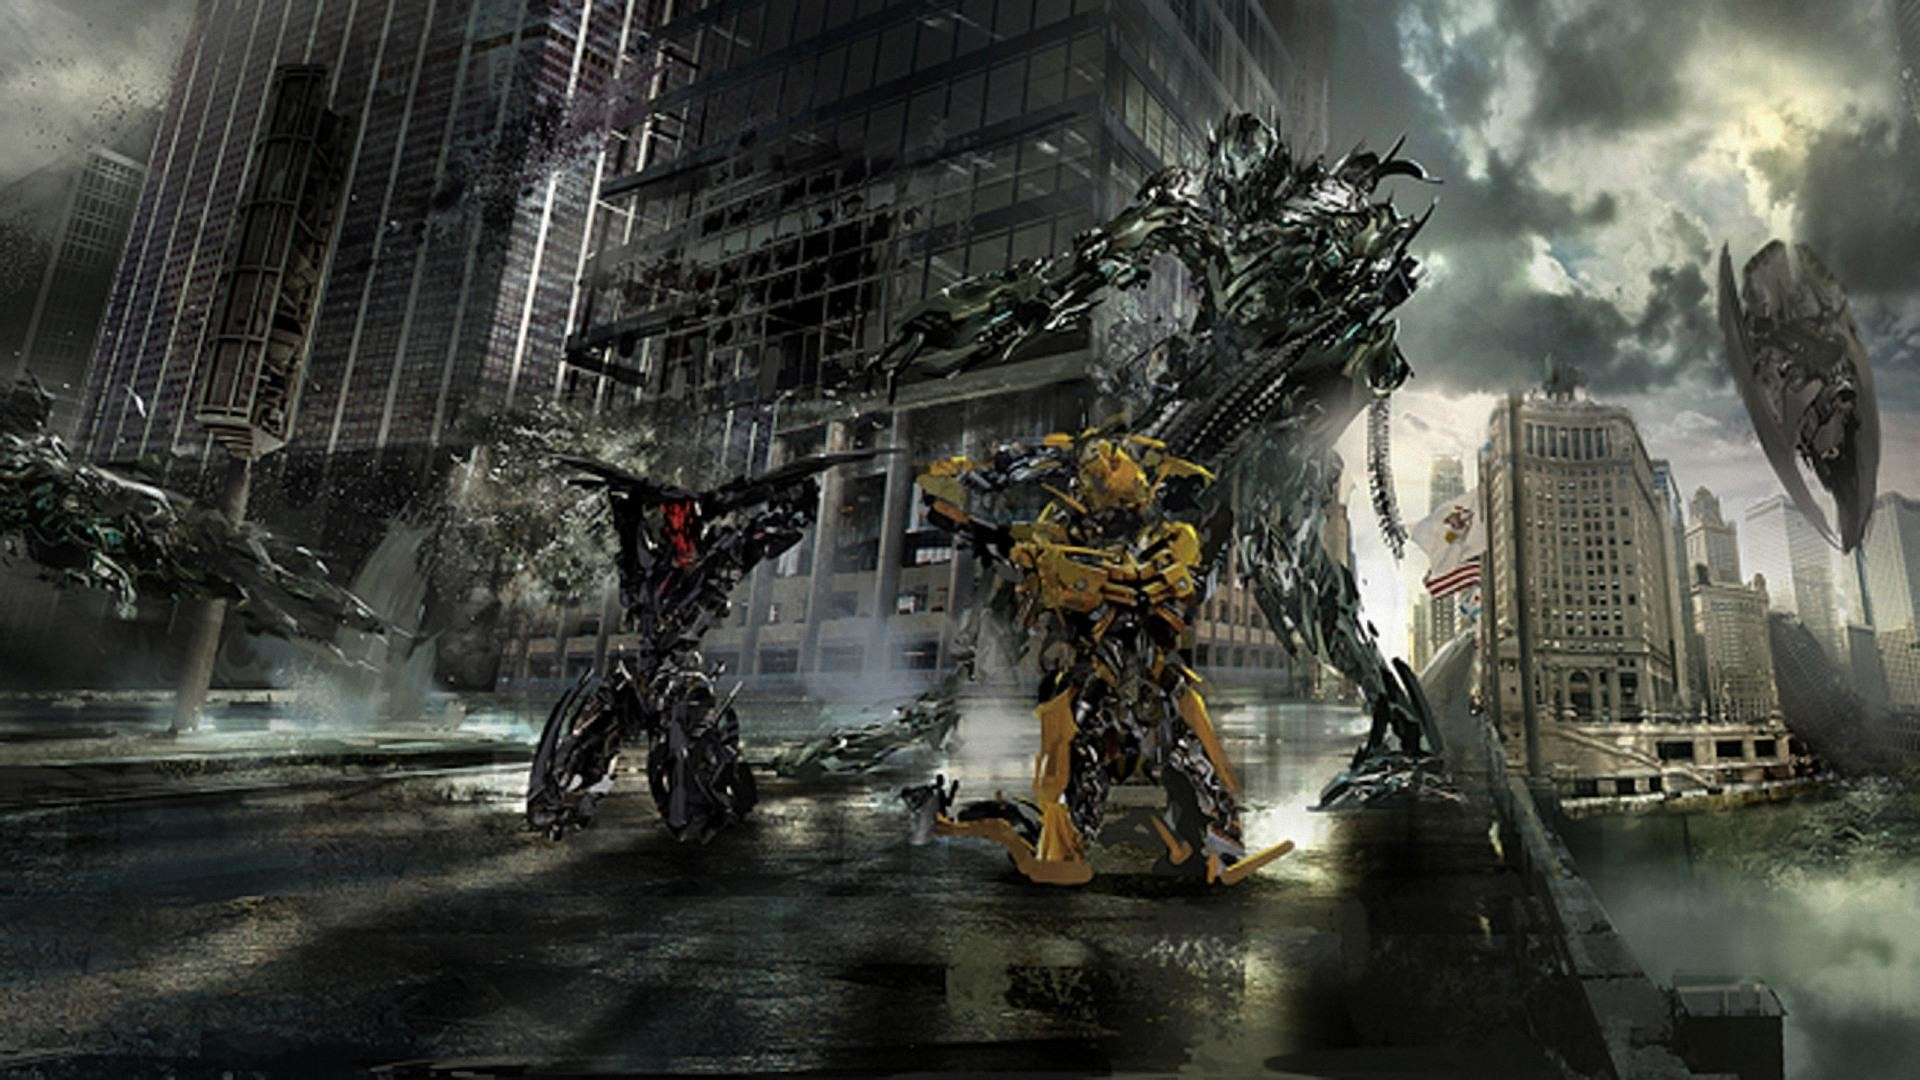 transformers 5 hd wallpaper